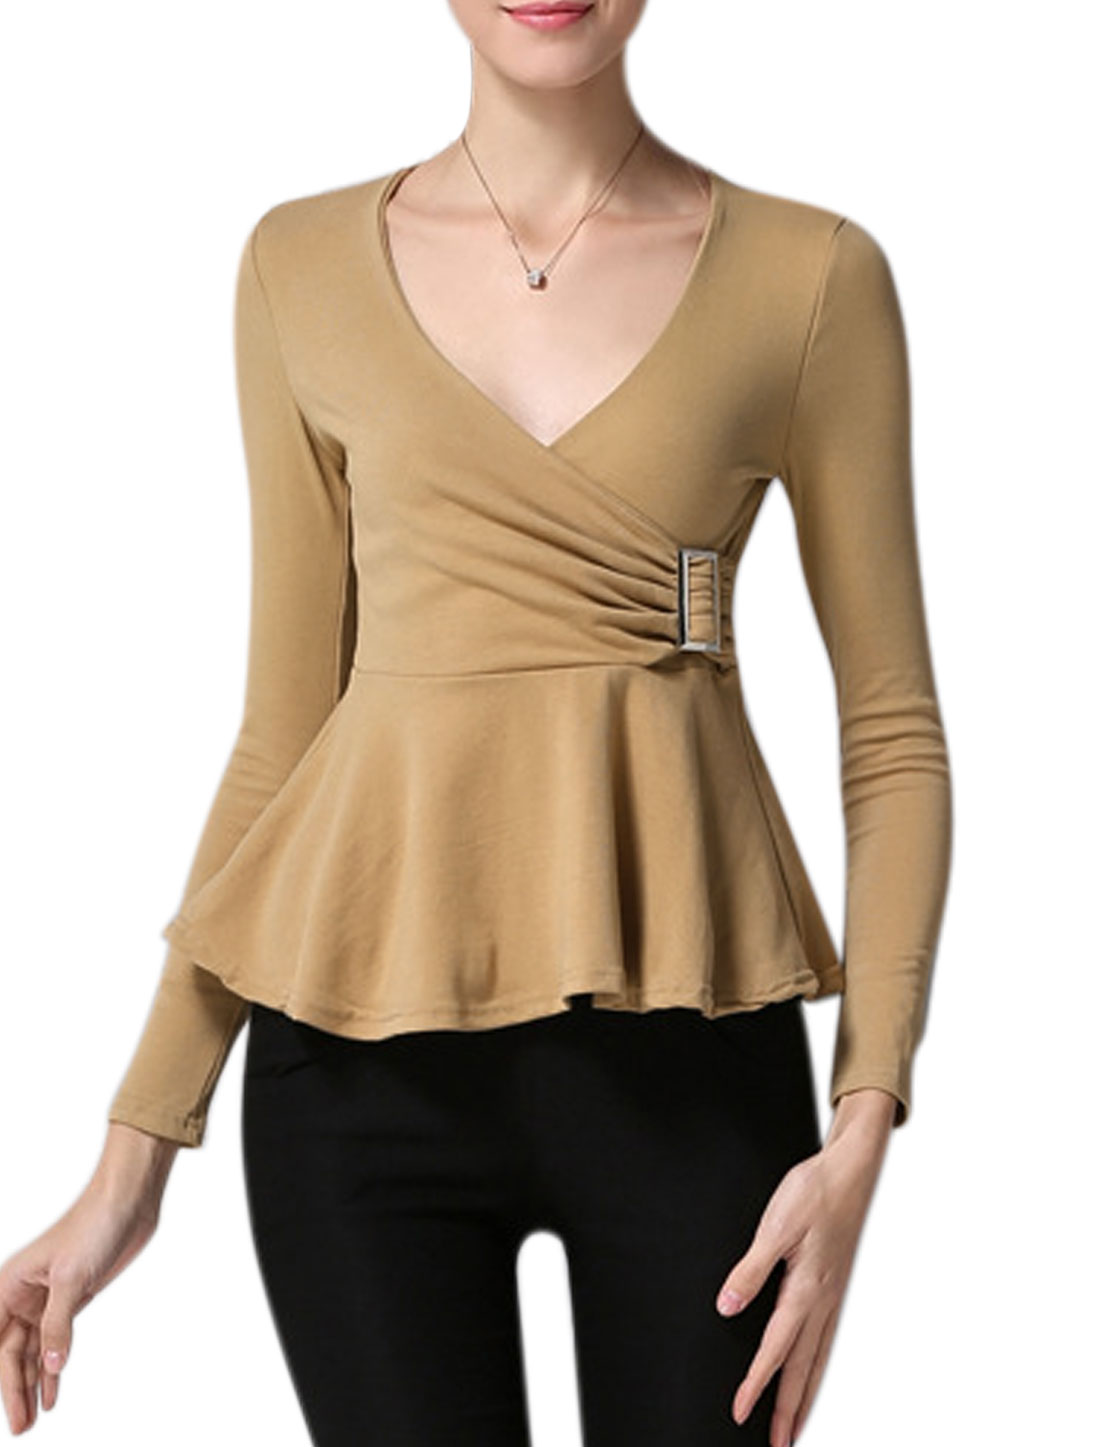 Women Crossover V Neck Long Sleeves Buckle Decor Peplum Top Brown XS